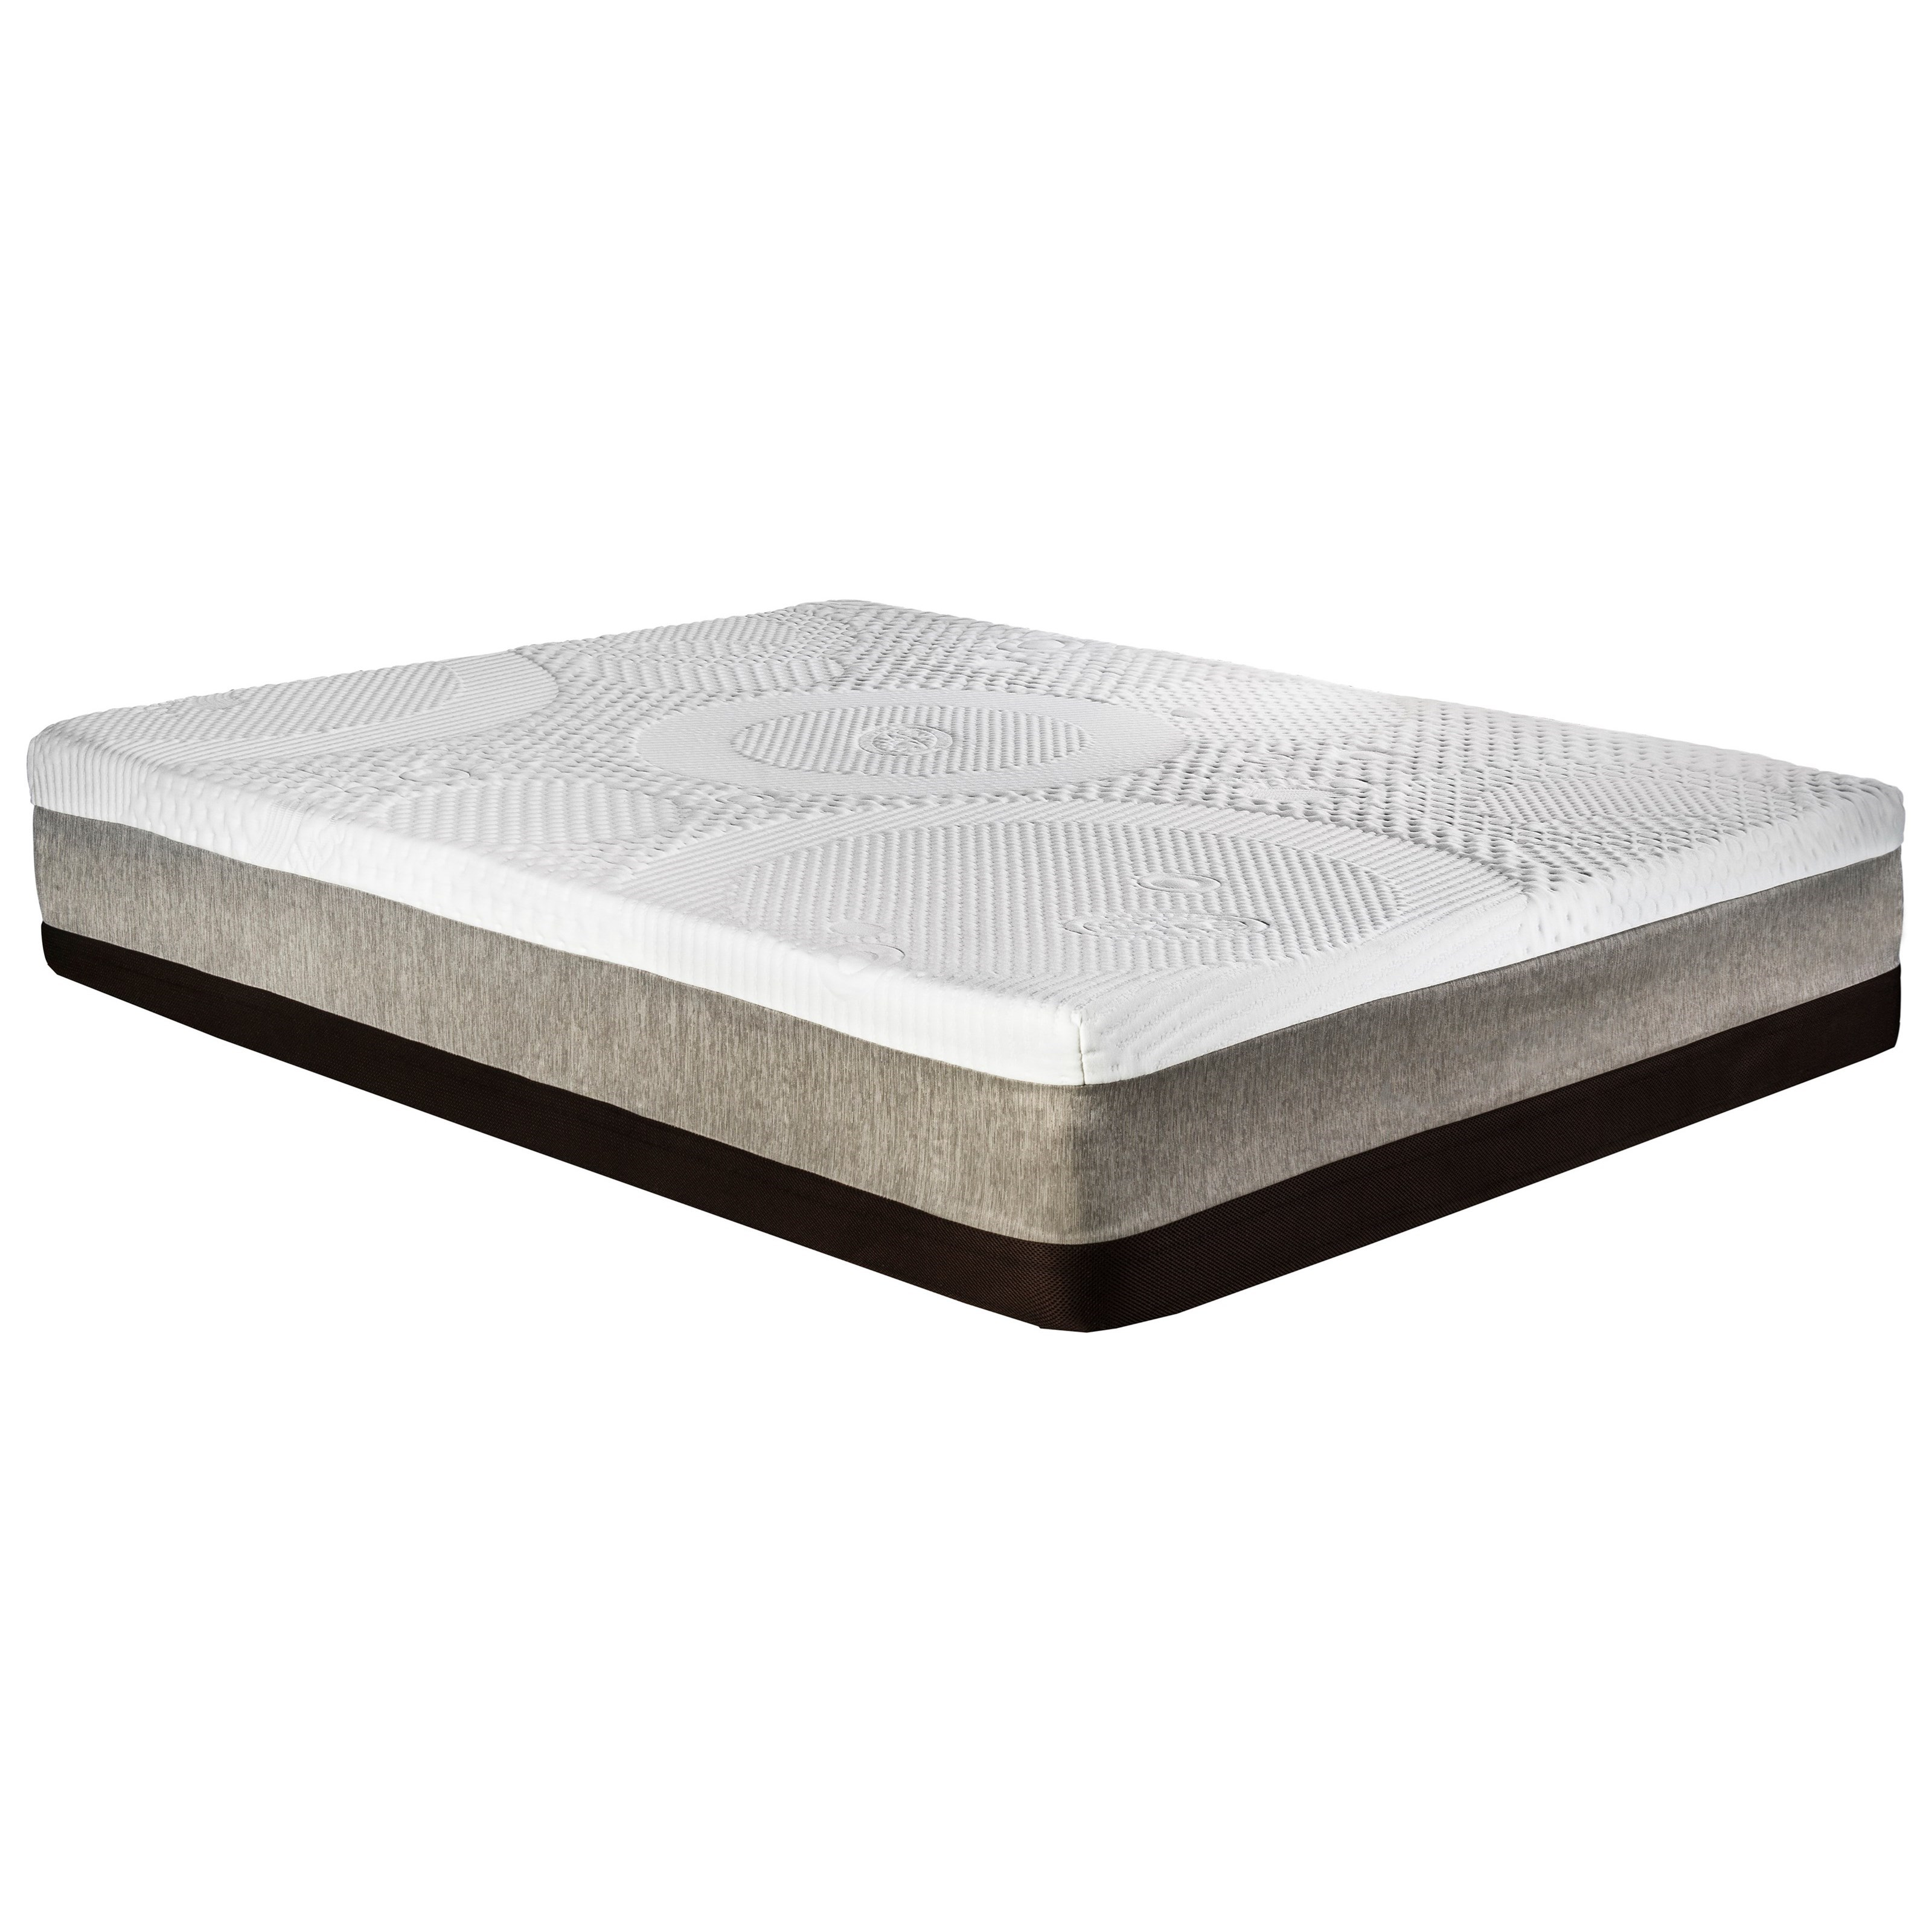 therapy revive mattress memory foam serenity gel bamboo corner rest inch products